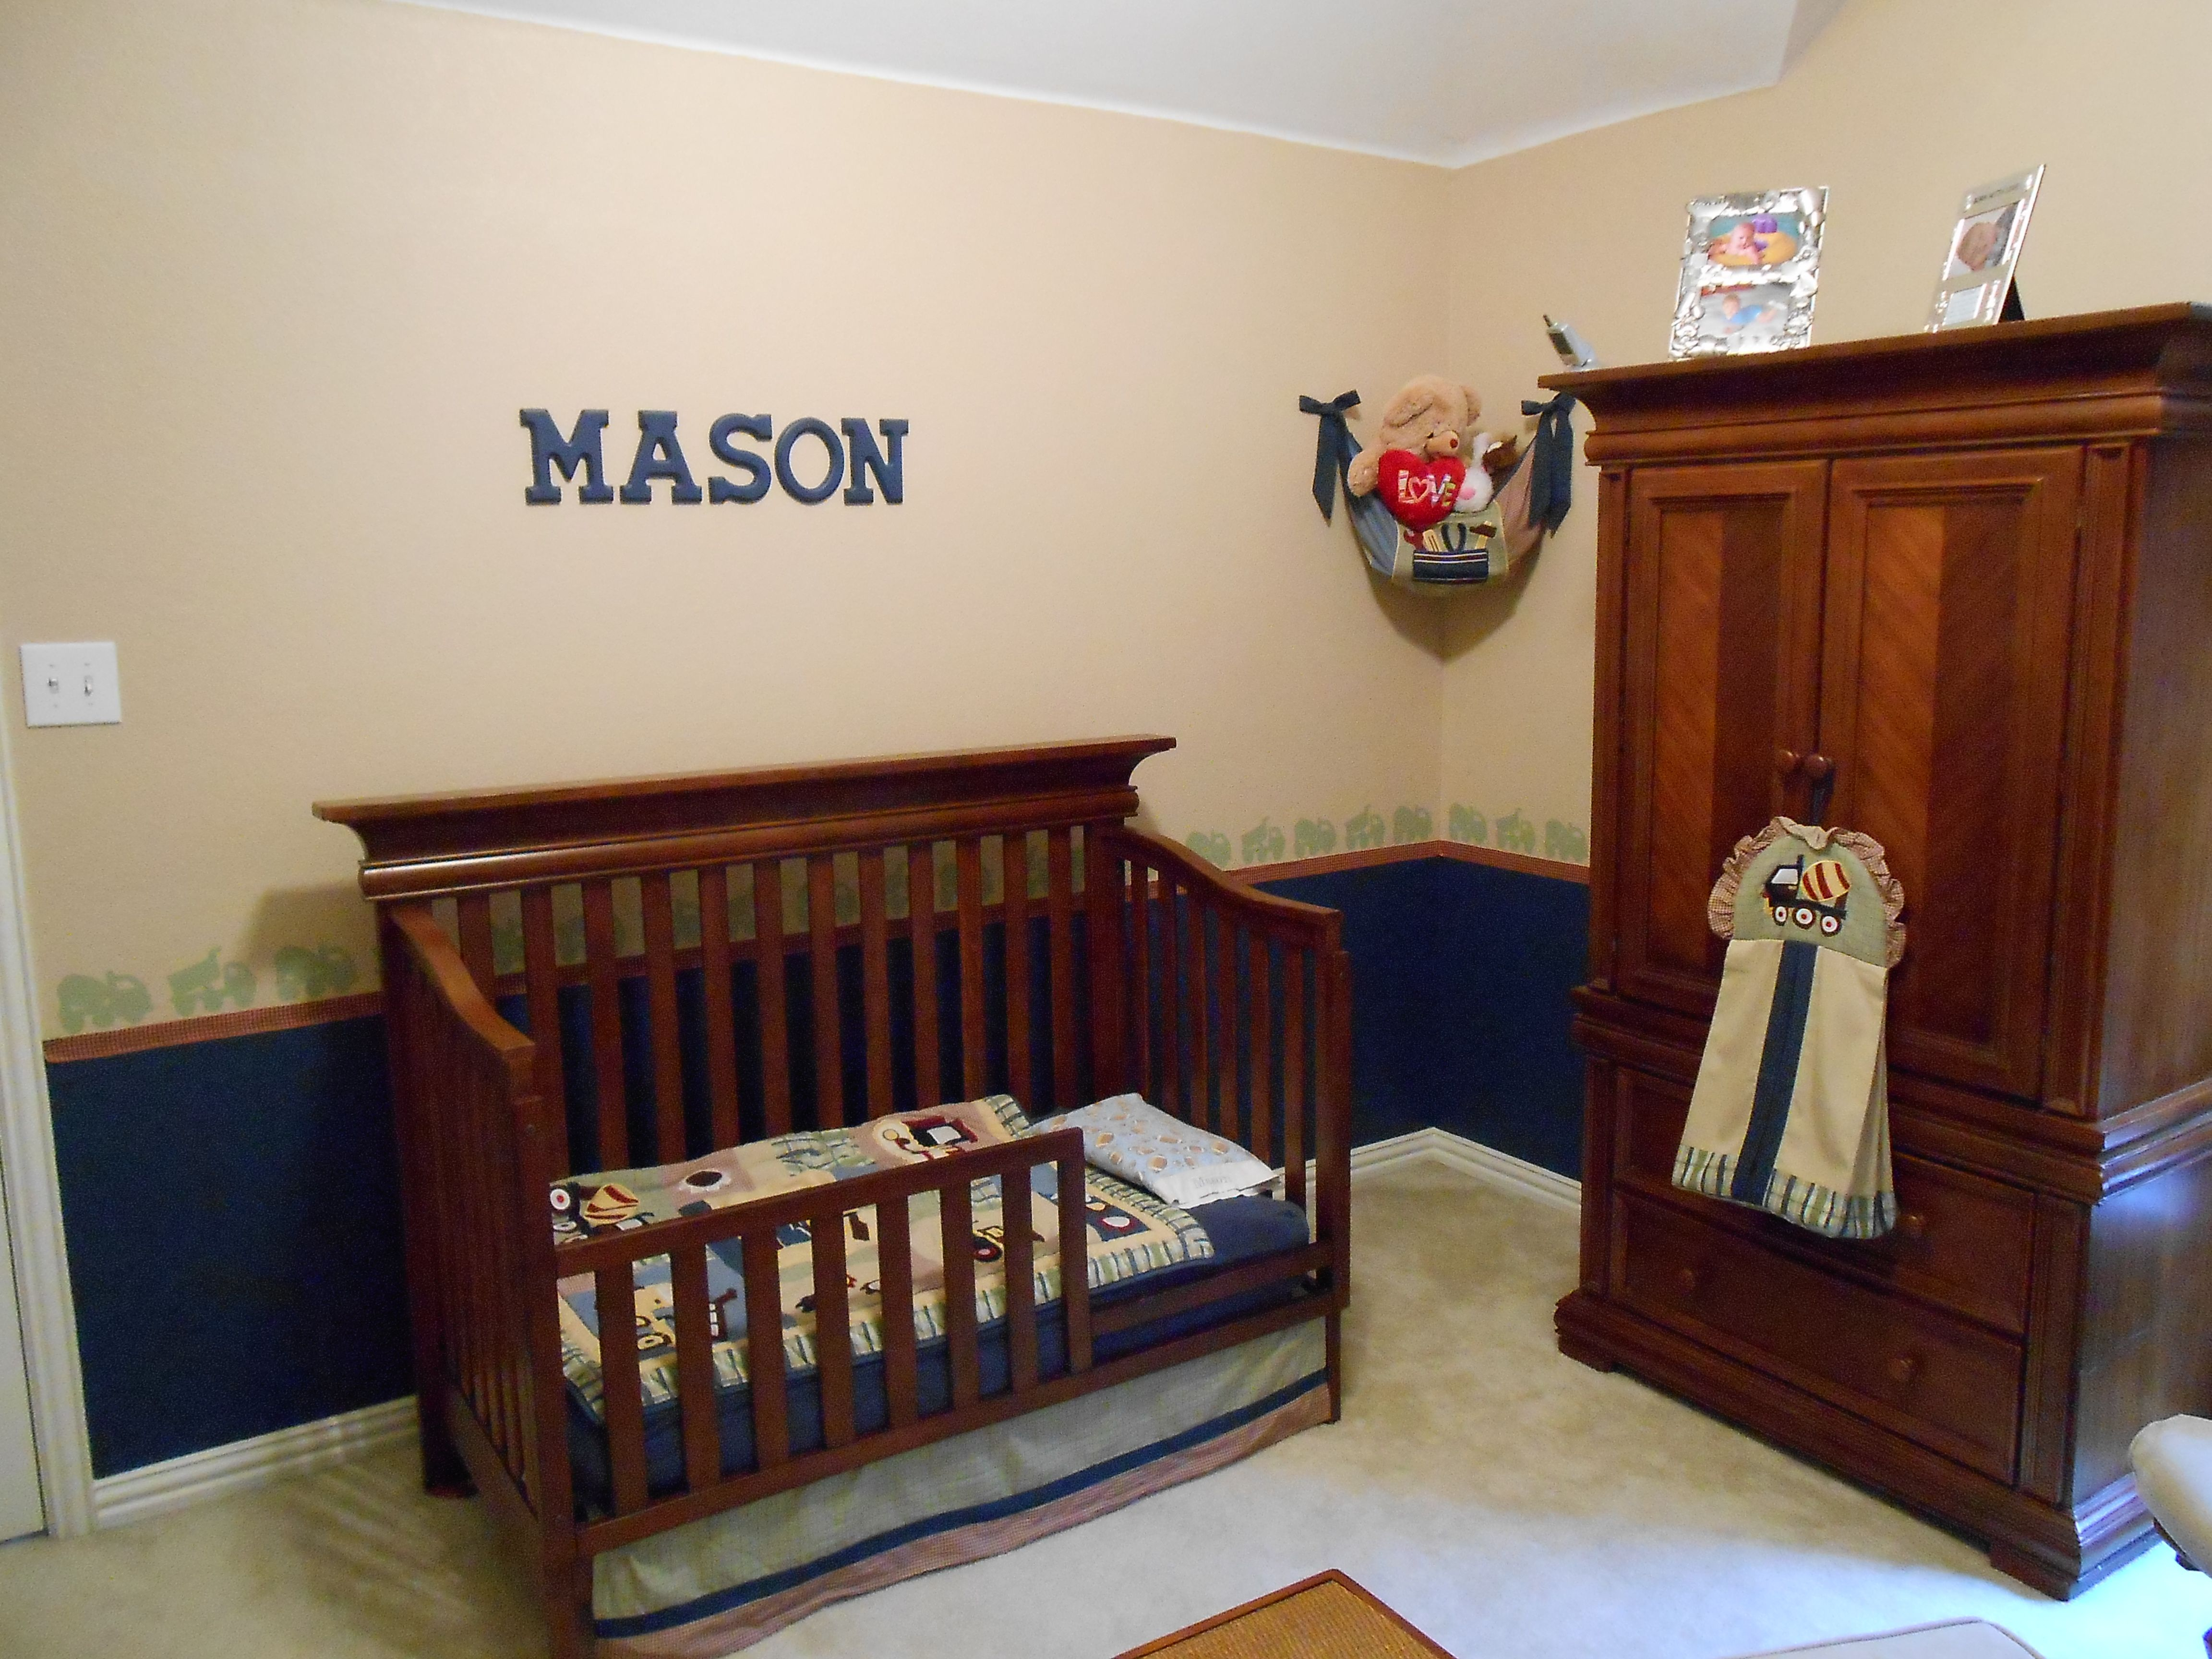 This is a baby boy toddler boy room I designed with the theme